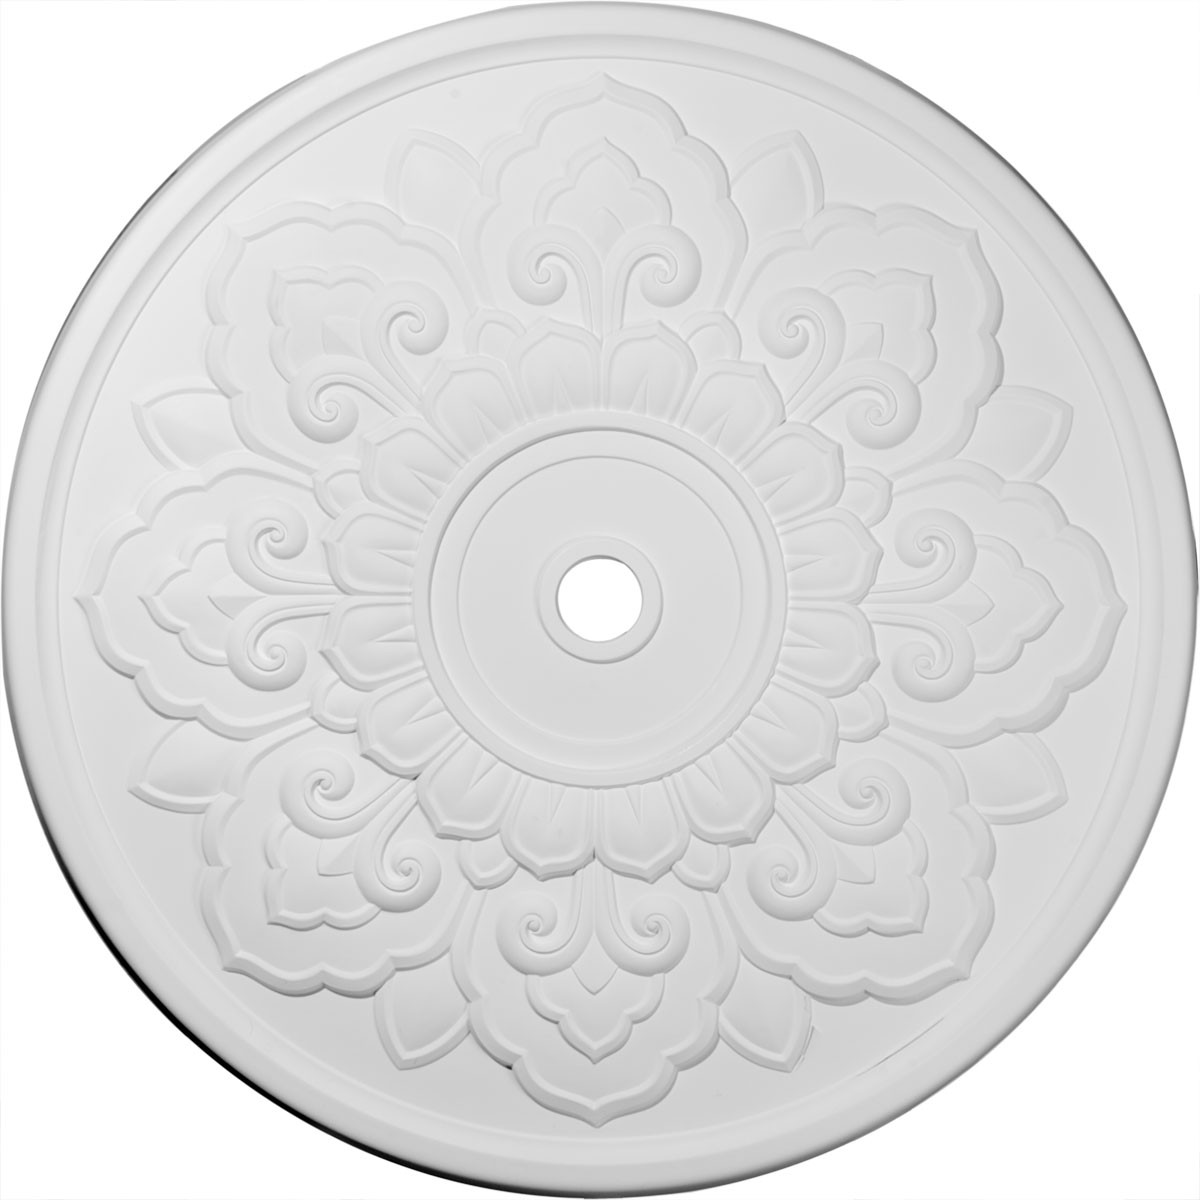 """EM-CM50LO - 50 1/8""""OD x 3 5/8""""ID x 1 3/4""""P Lorry Ceiling Medallion (Fits Canopies up to 14 1/8"""")"""